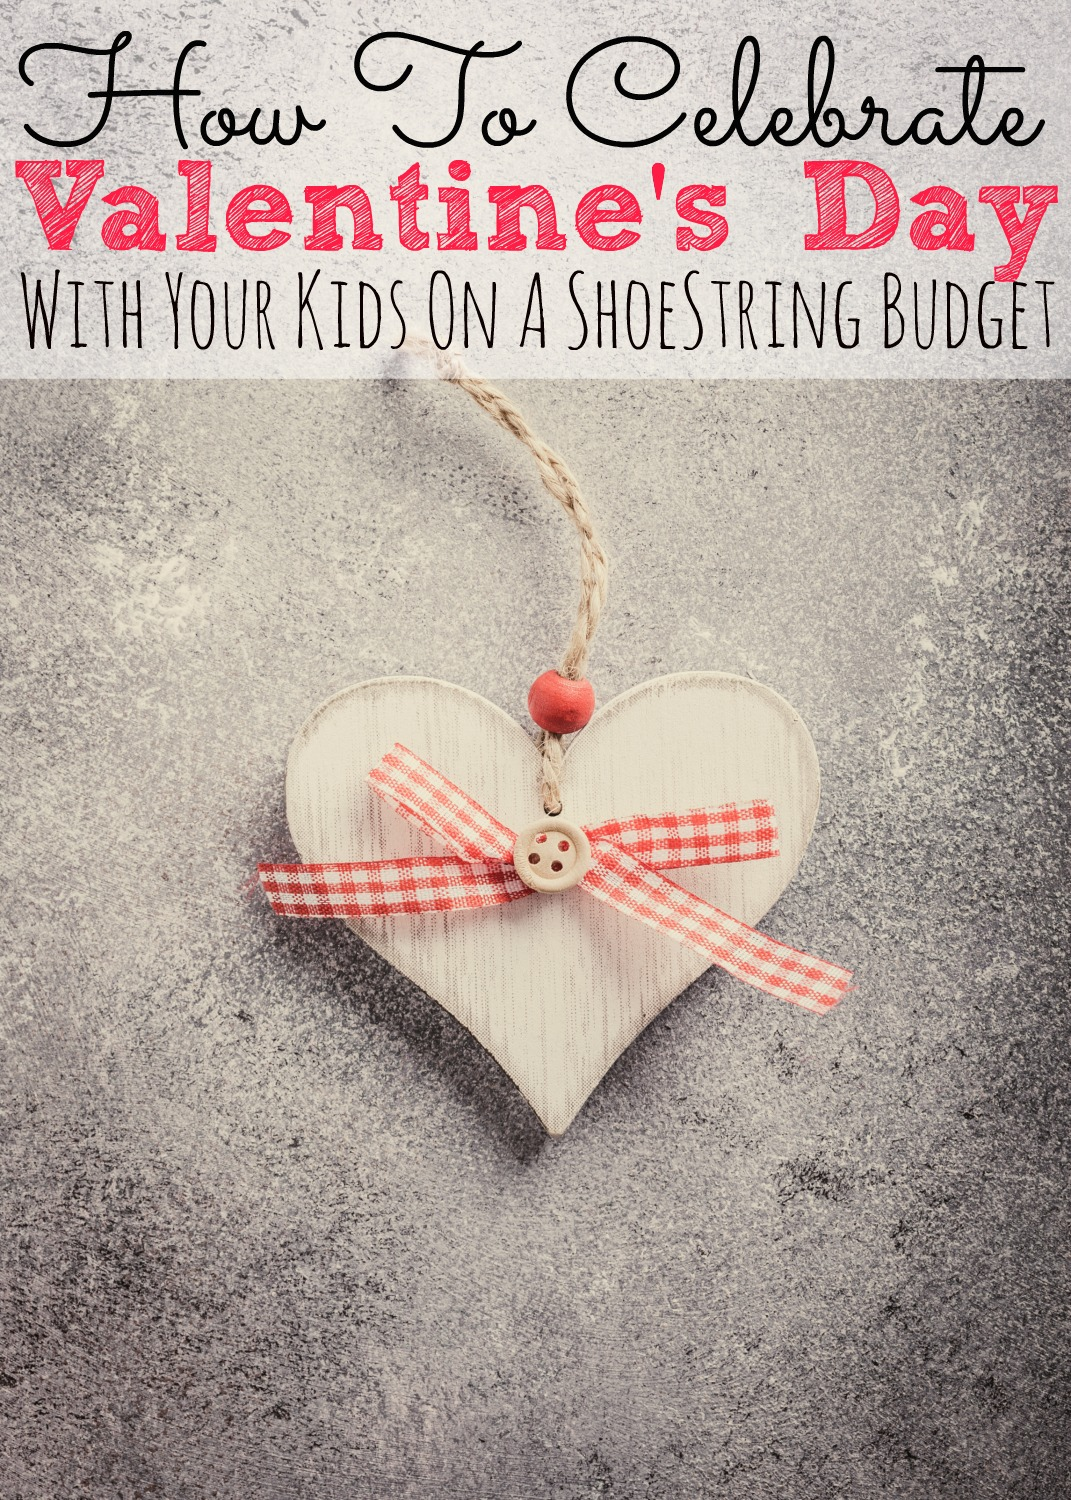 How to Celebrate Valentine's Day with your Kids on a Shoestring Budget